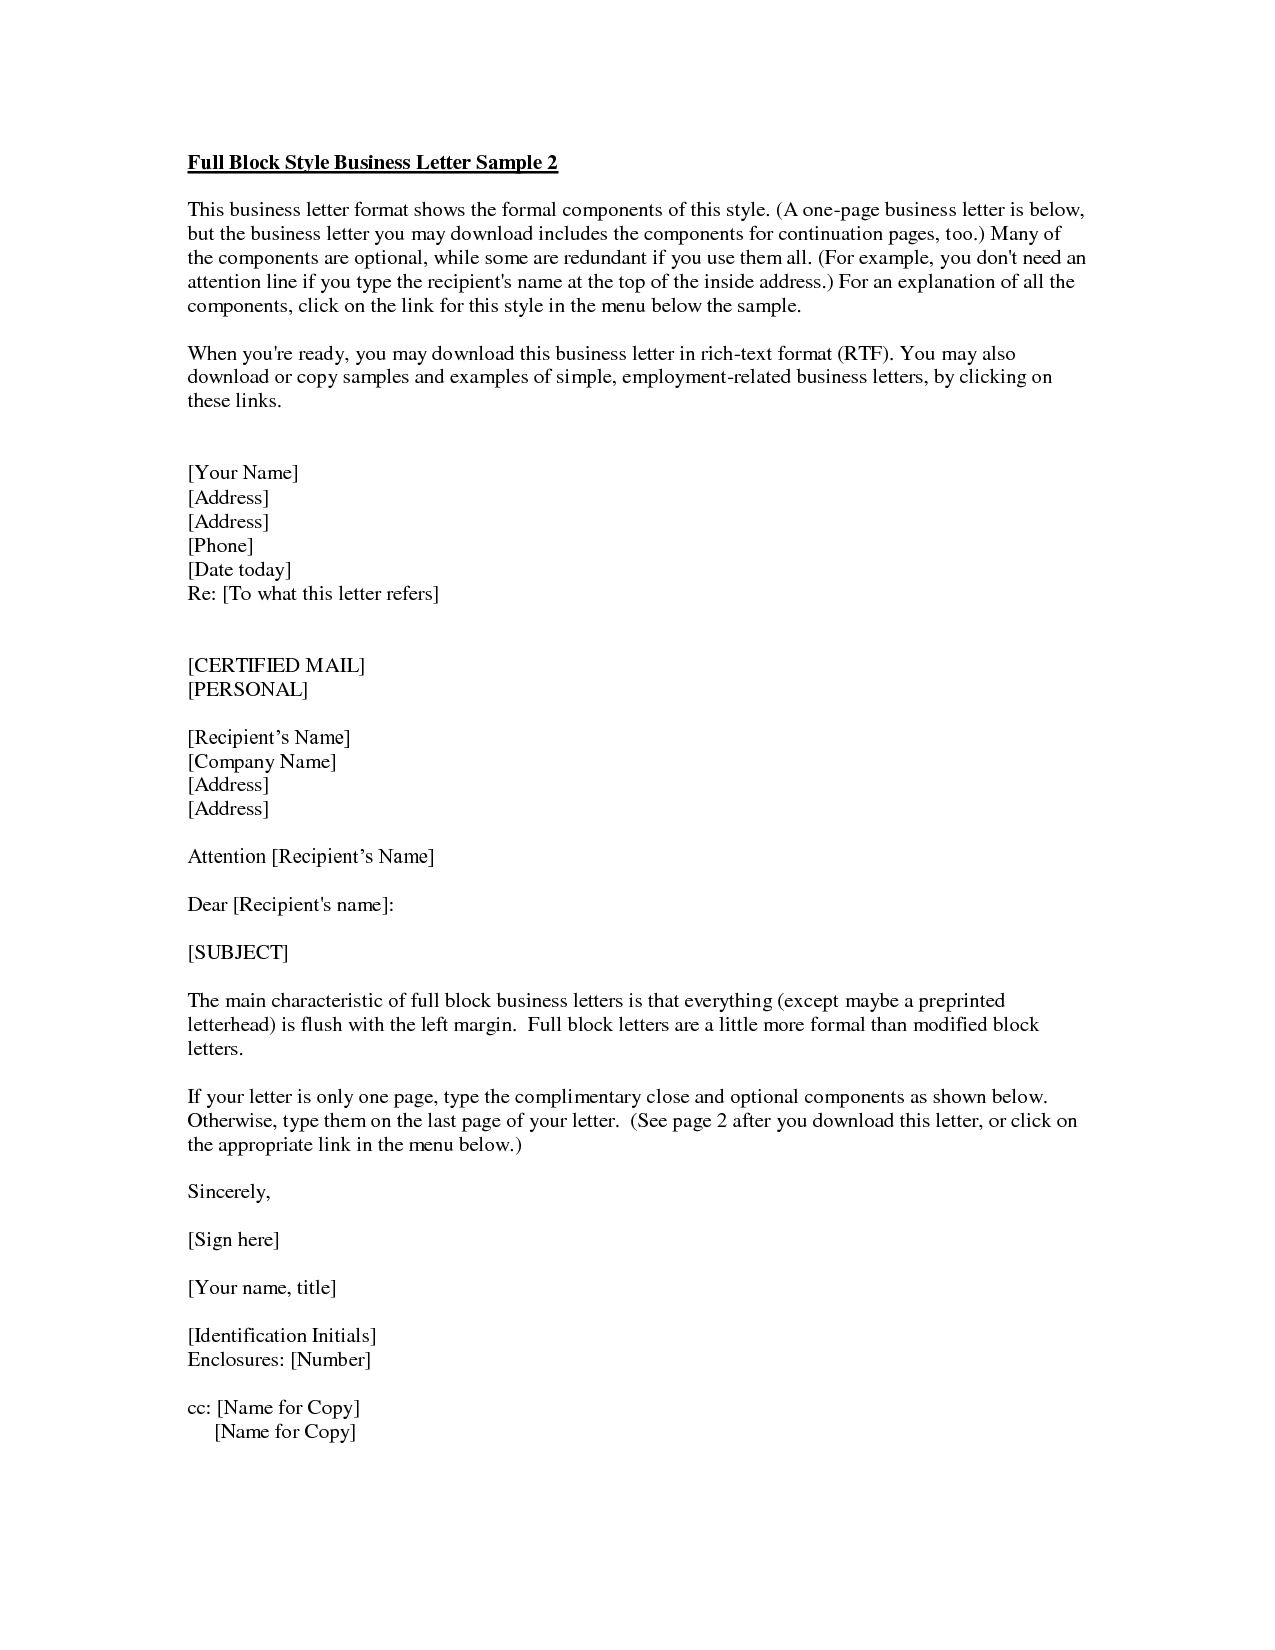 business letter format with cc and enclosures resume pics and letter sample pics at resumeka